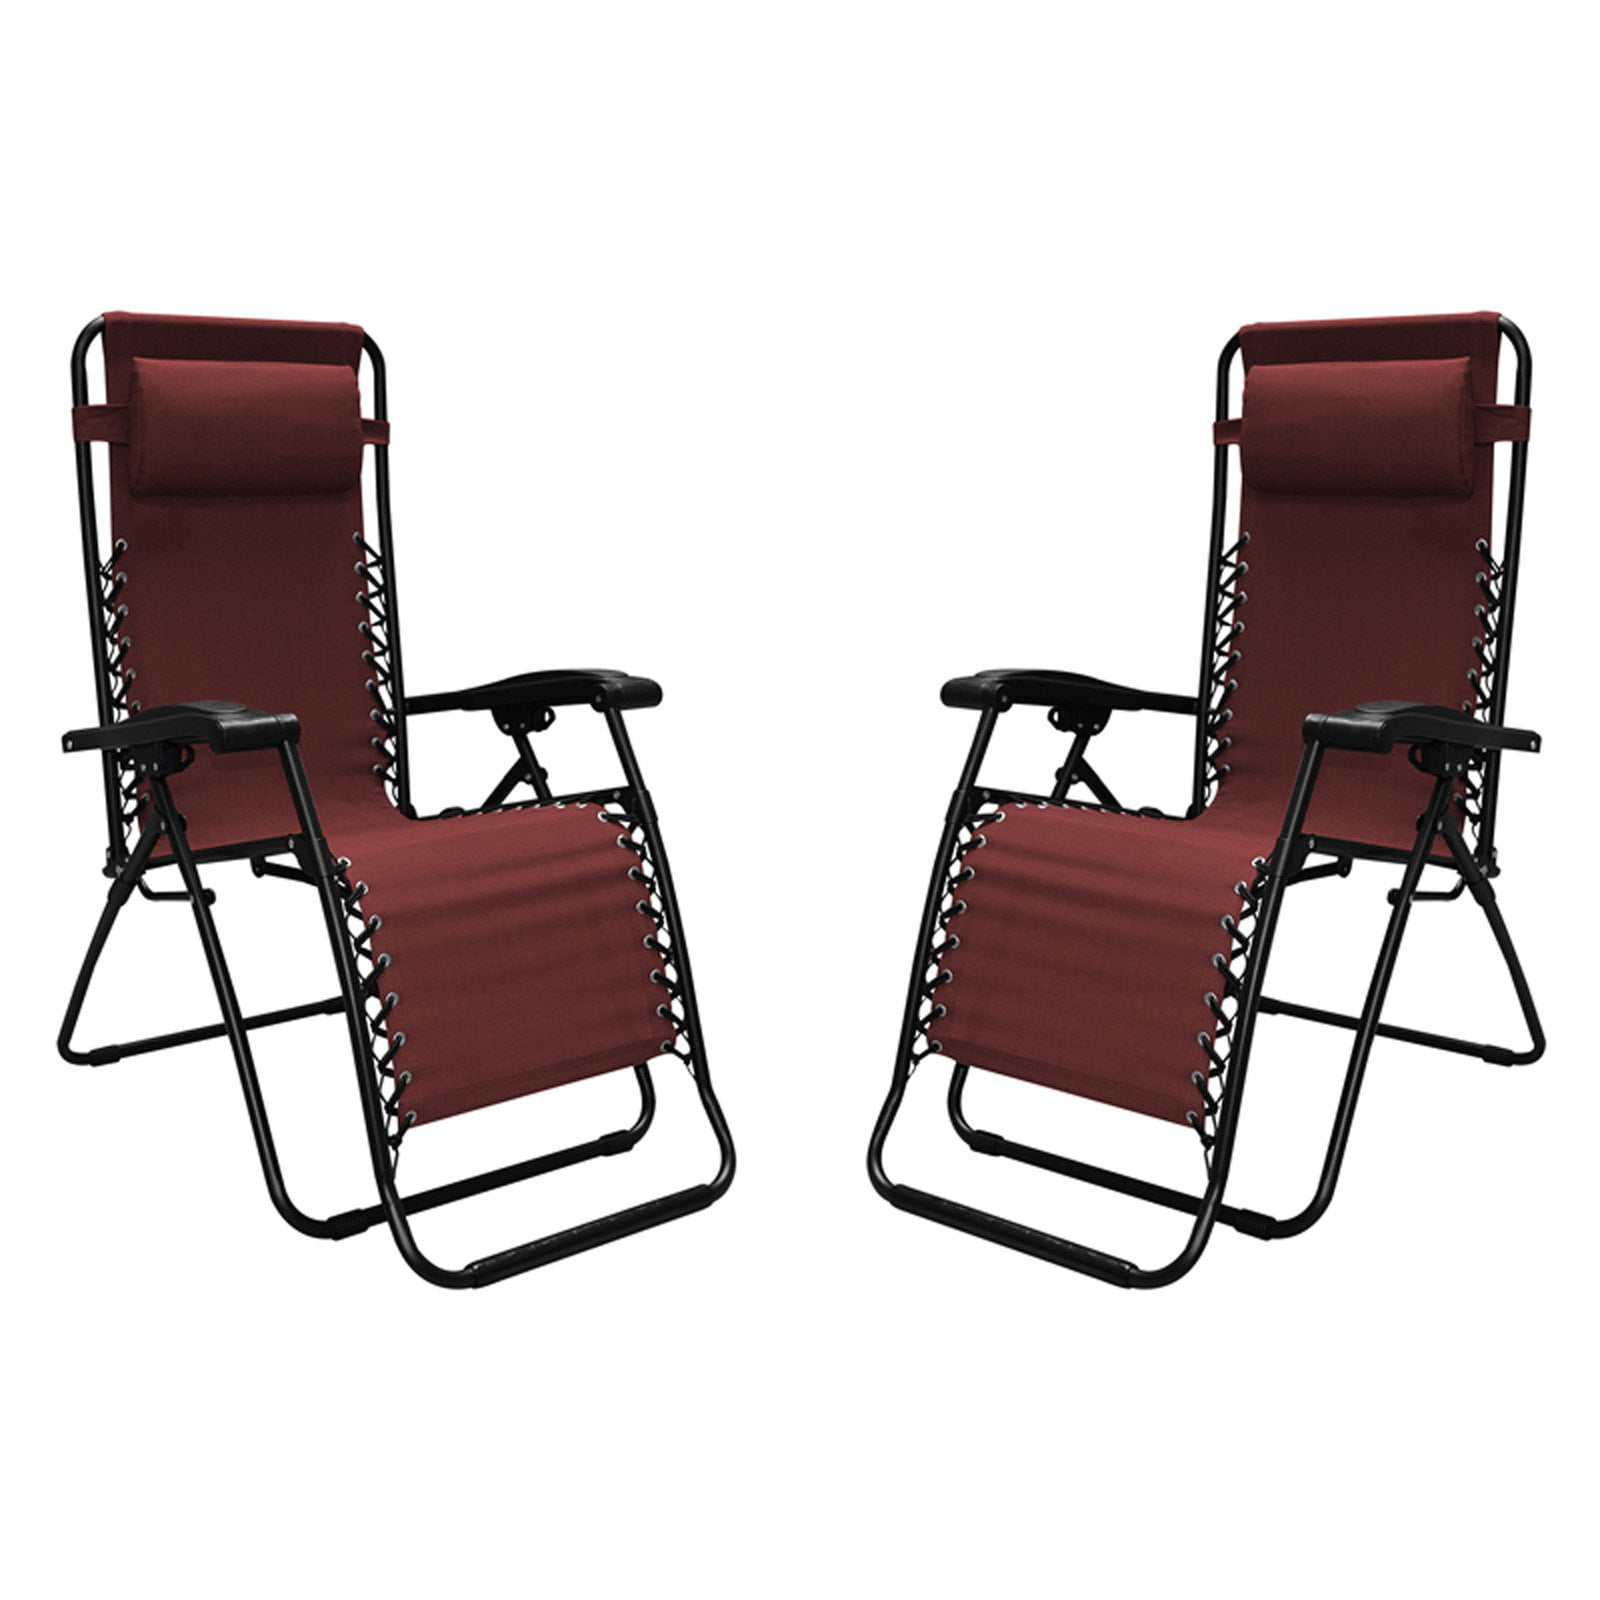 Caravan Sports Infinity Zero Gravity Chair 2 Pack - Red